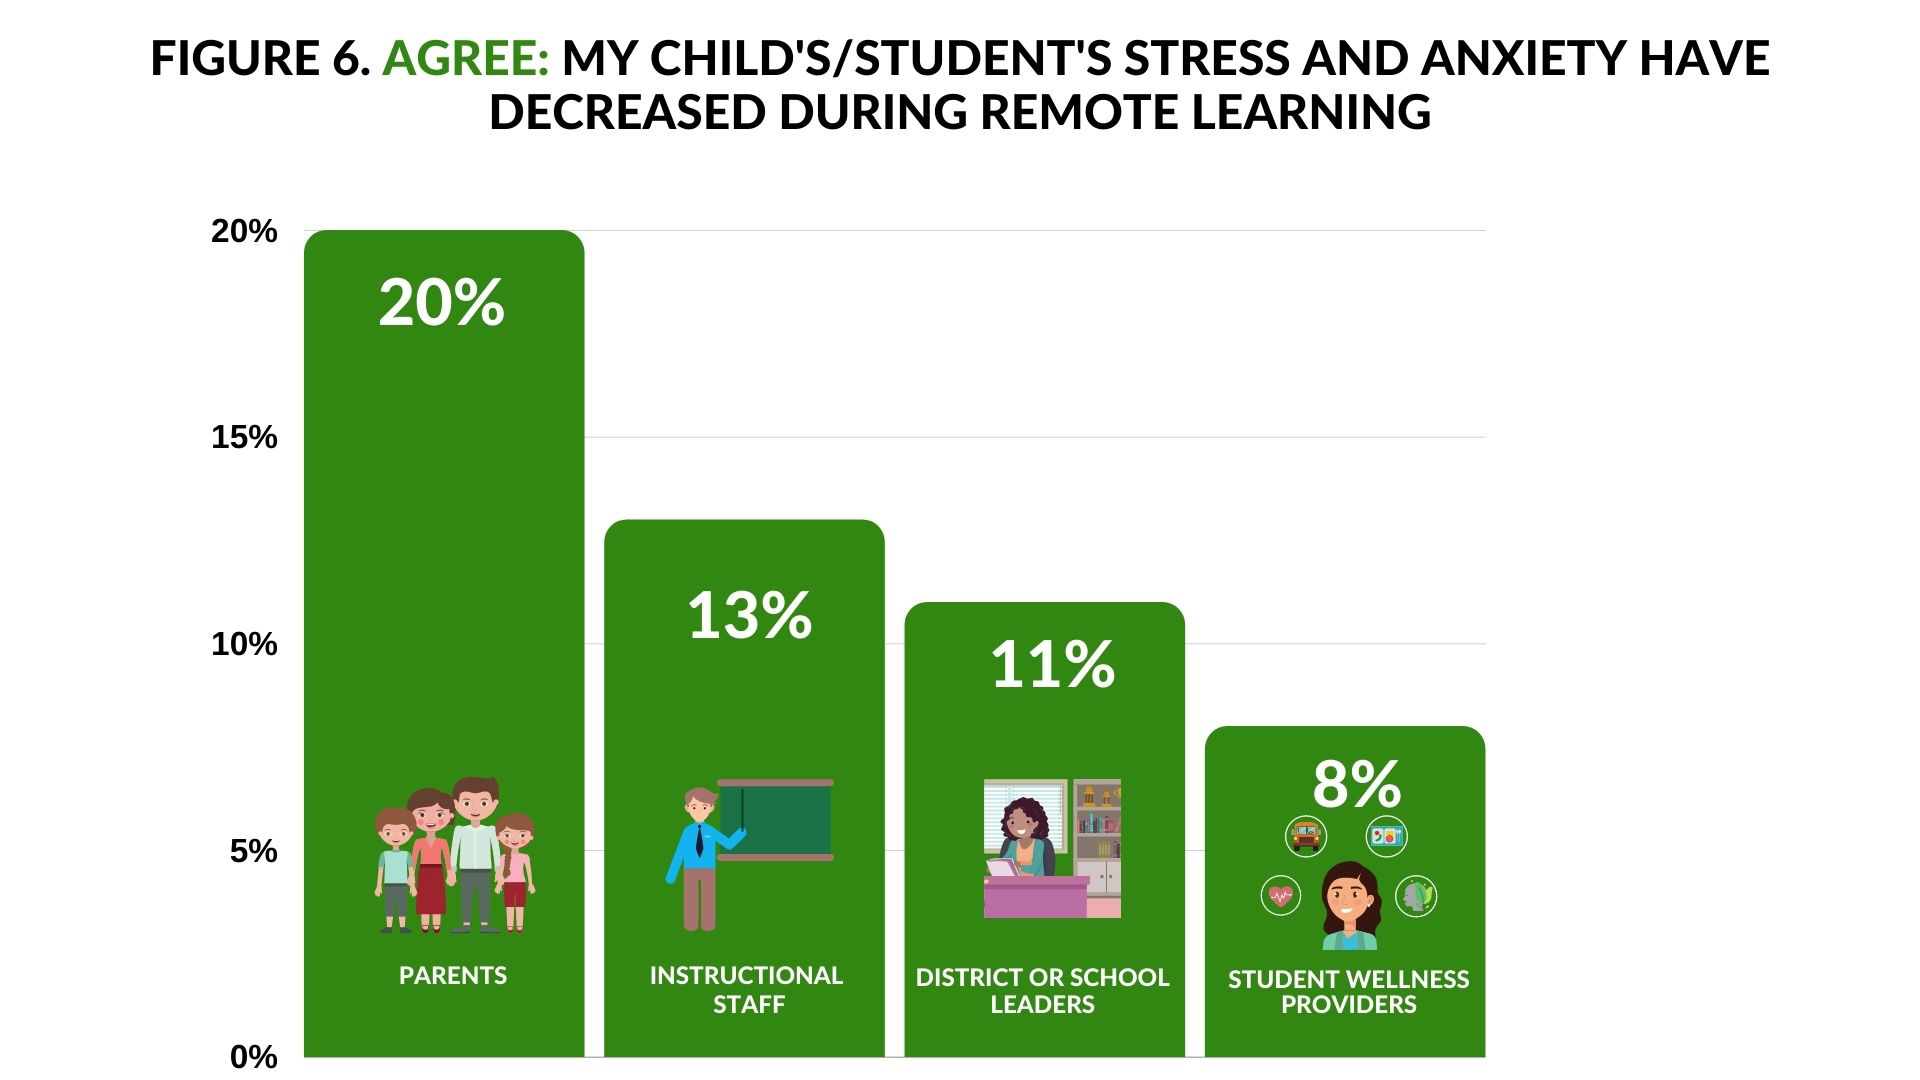 Agree Child's stress and anxiety decreases during remote learning - 20% parents; 13% Instructional Staff; 11% District of School Leaders; 8% Student Wellness Providers